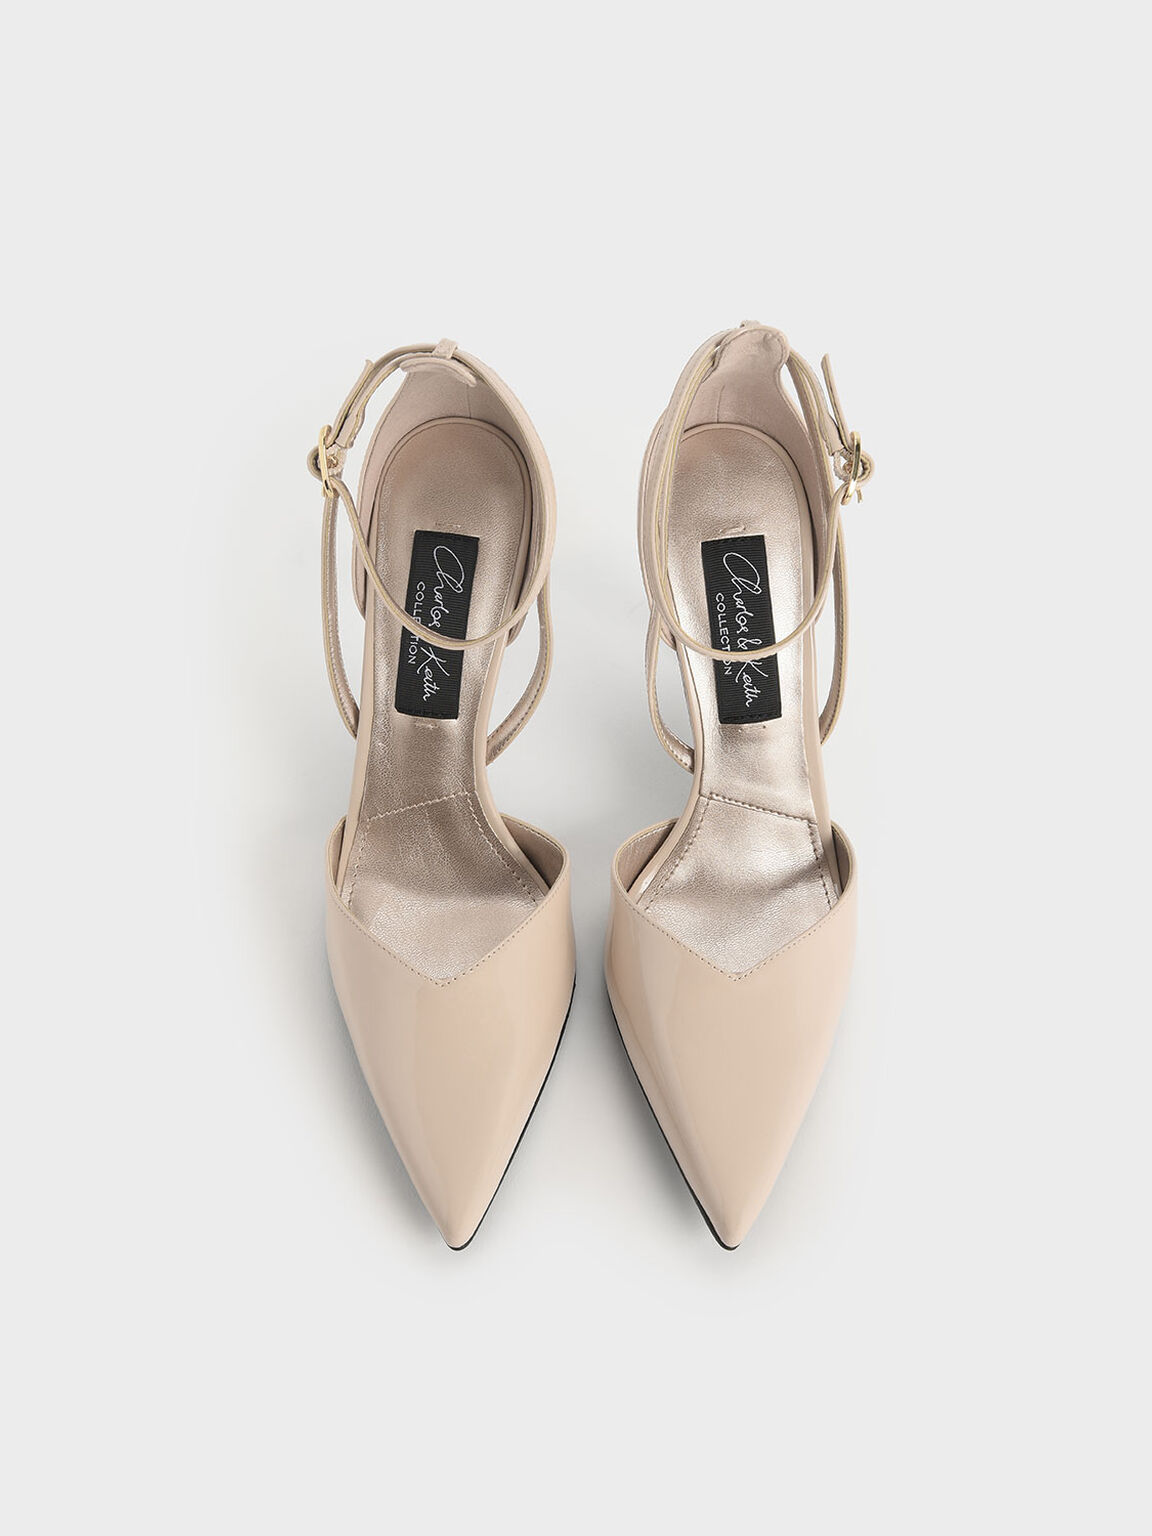 V-Cut Patent Leather Ankle Strap Heels, Nude, hi-res